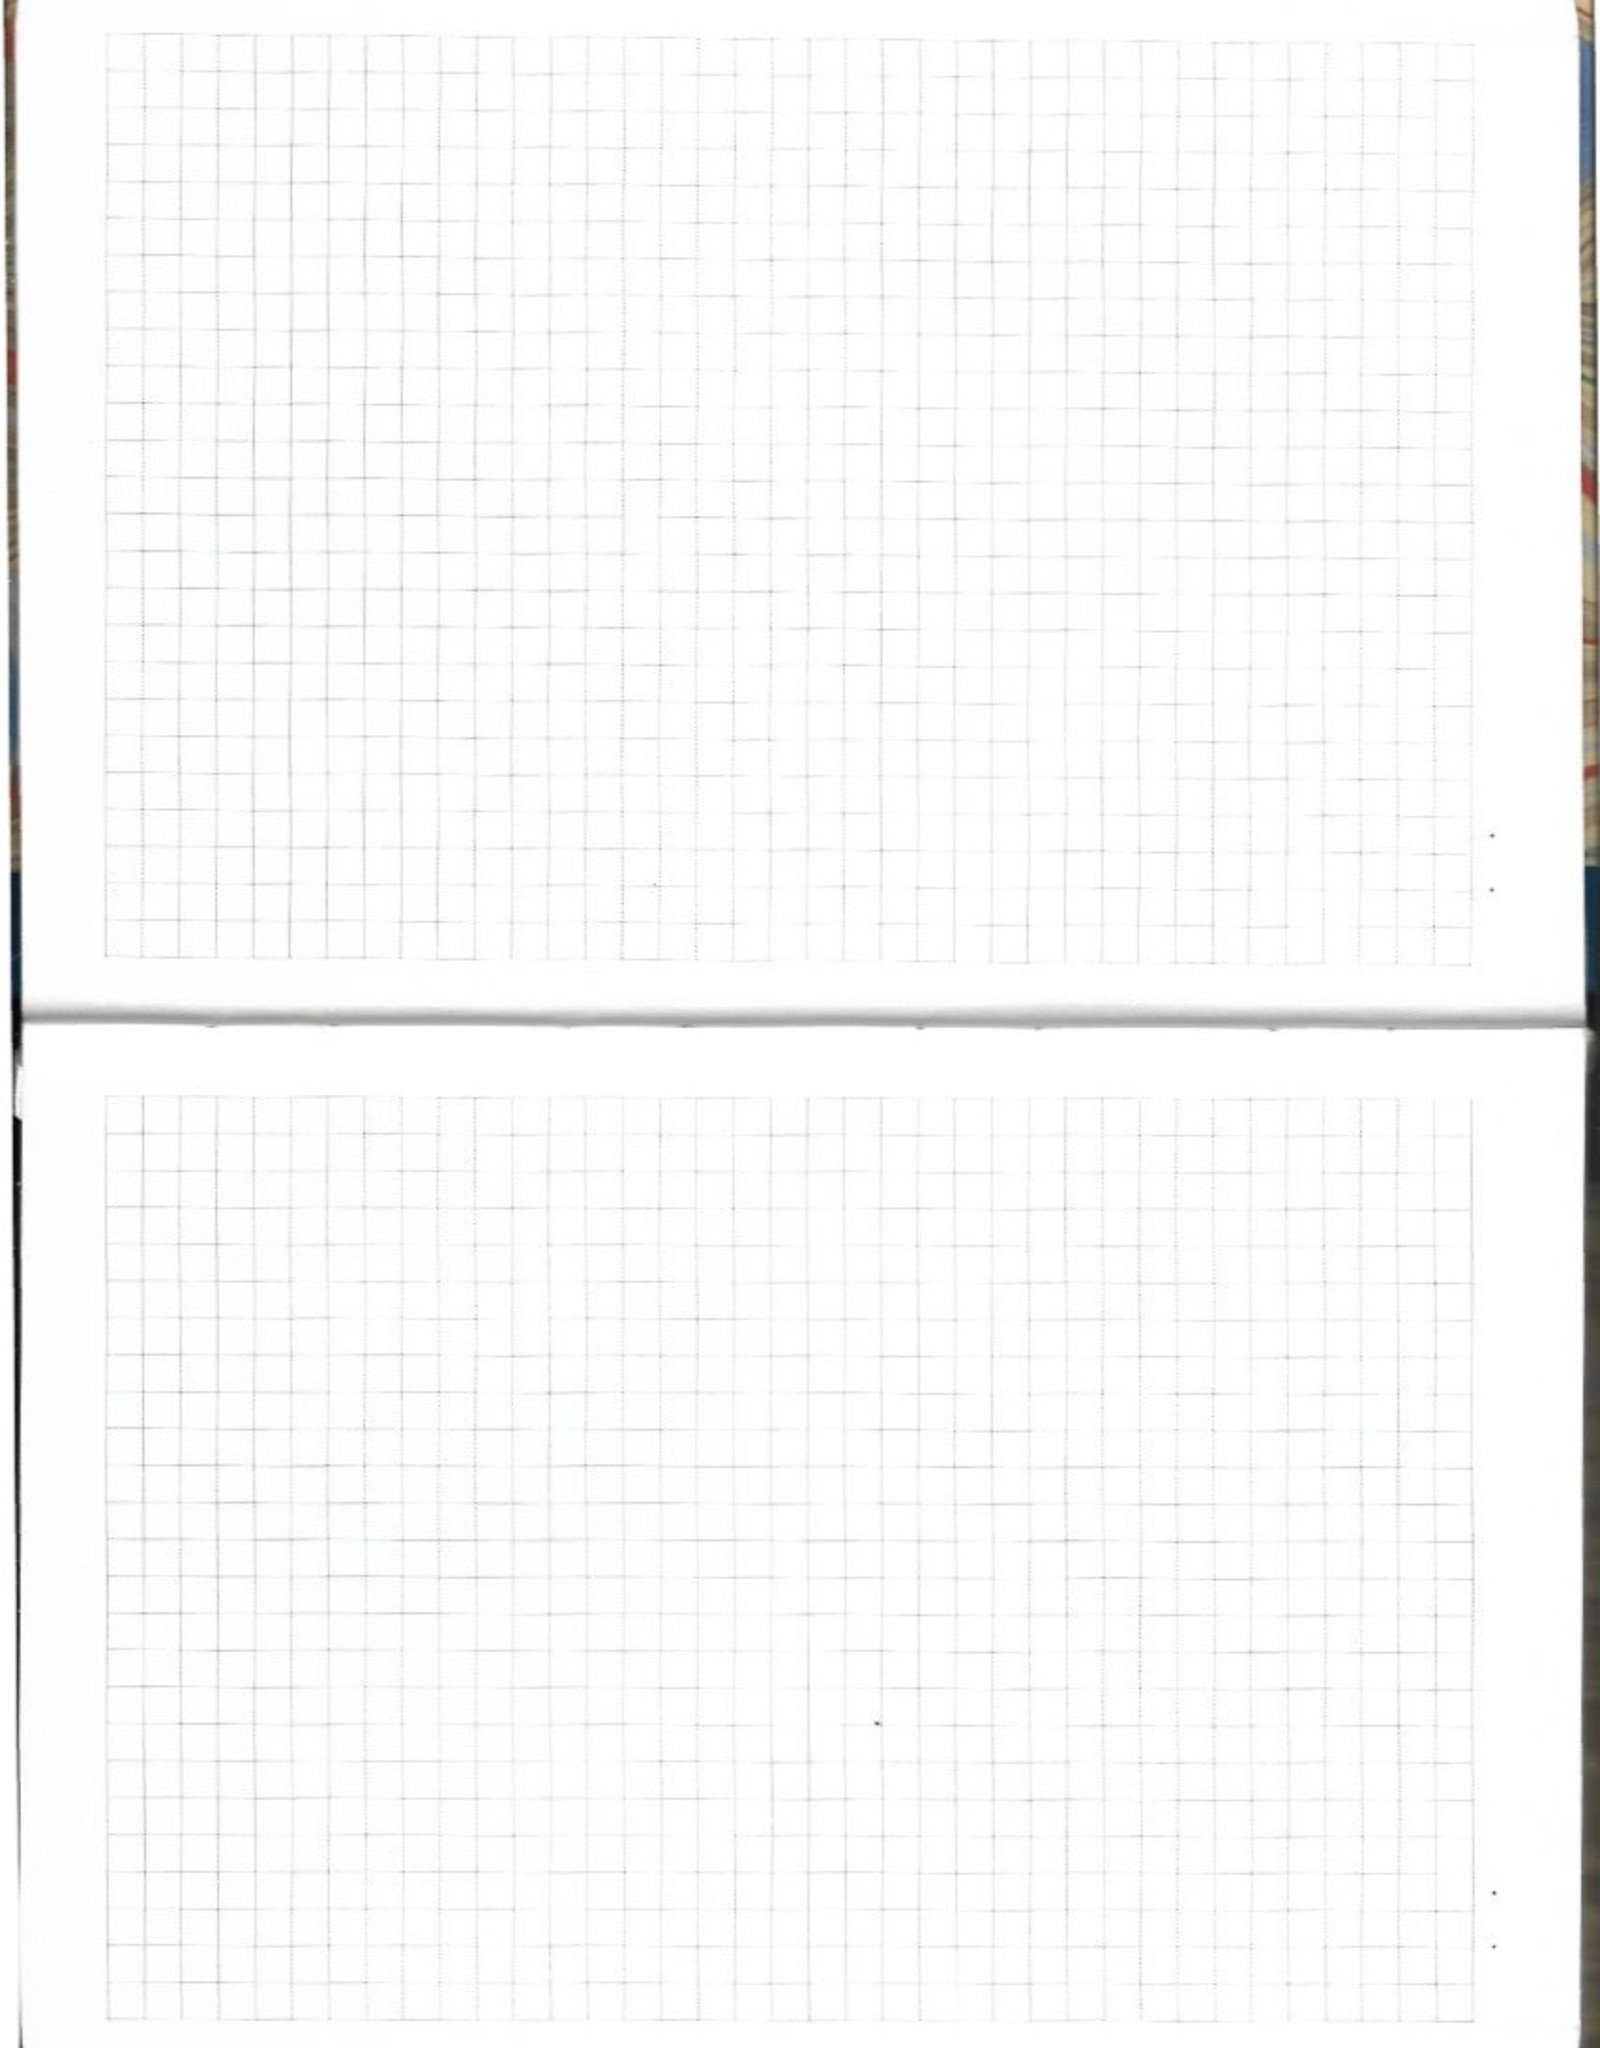 "Journal with Grid, Dot Grid, Blank Pages, 5.75"" x 8.5"" Marbled Cover"